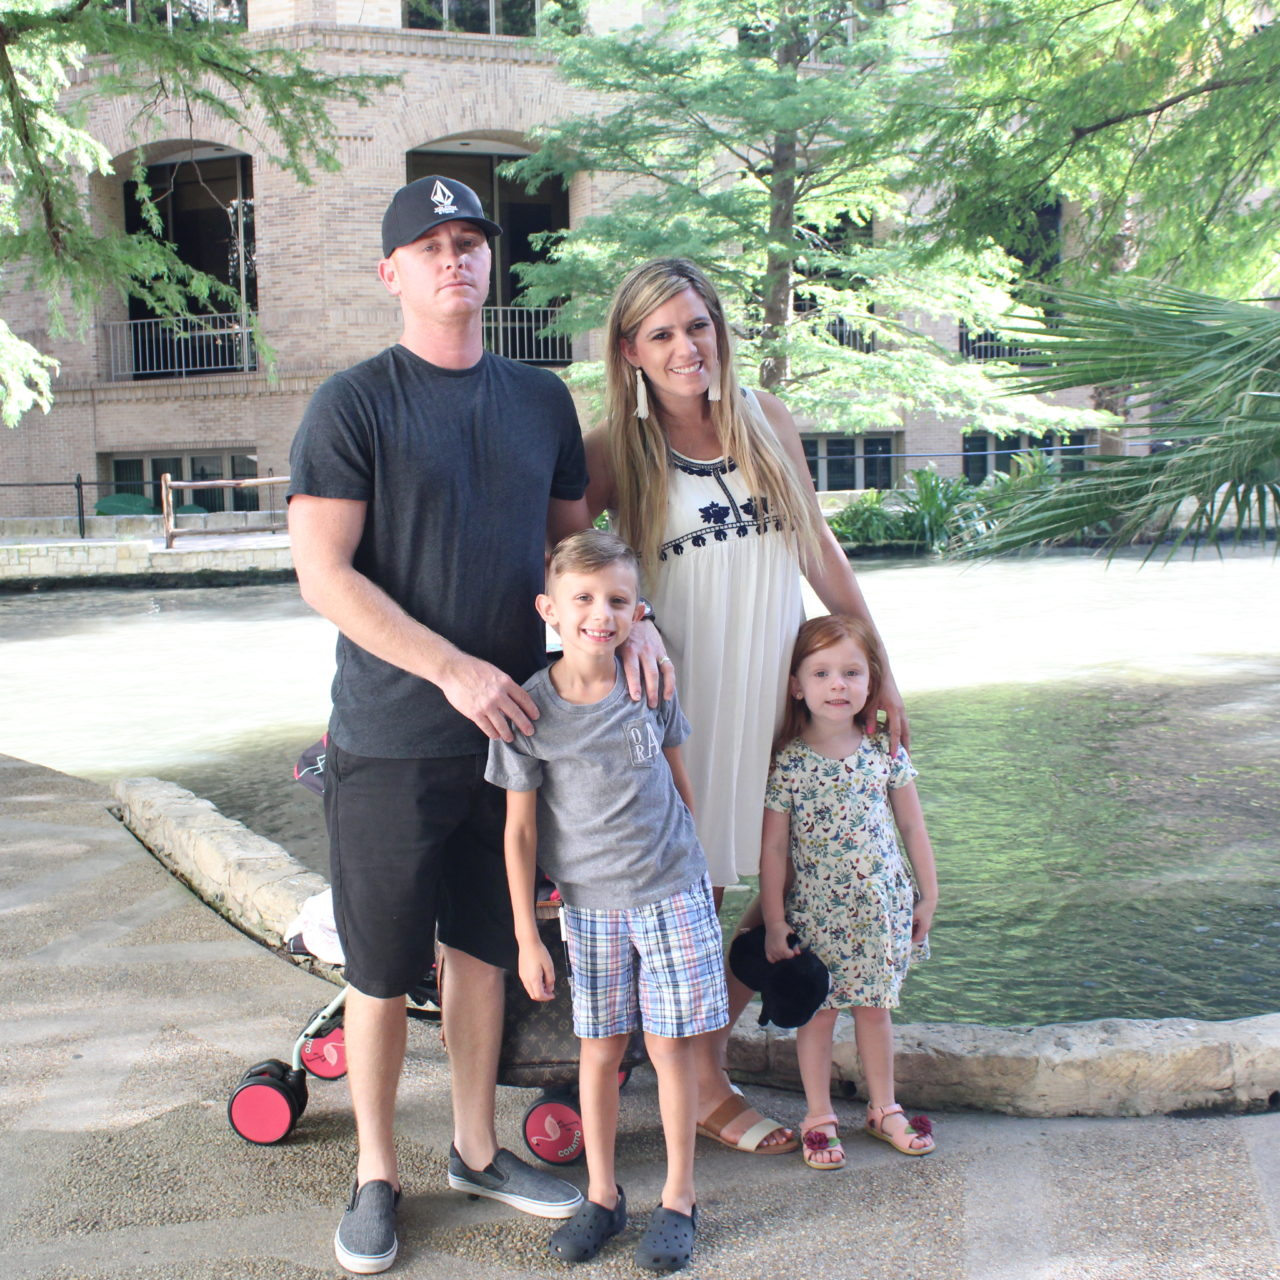 Our San Antonio summer vacation!